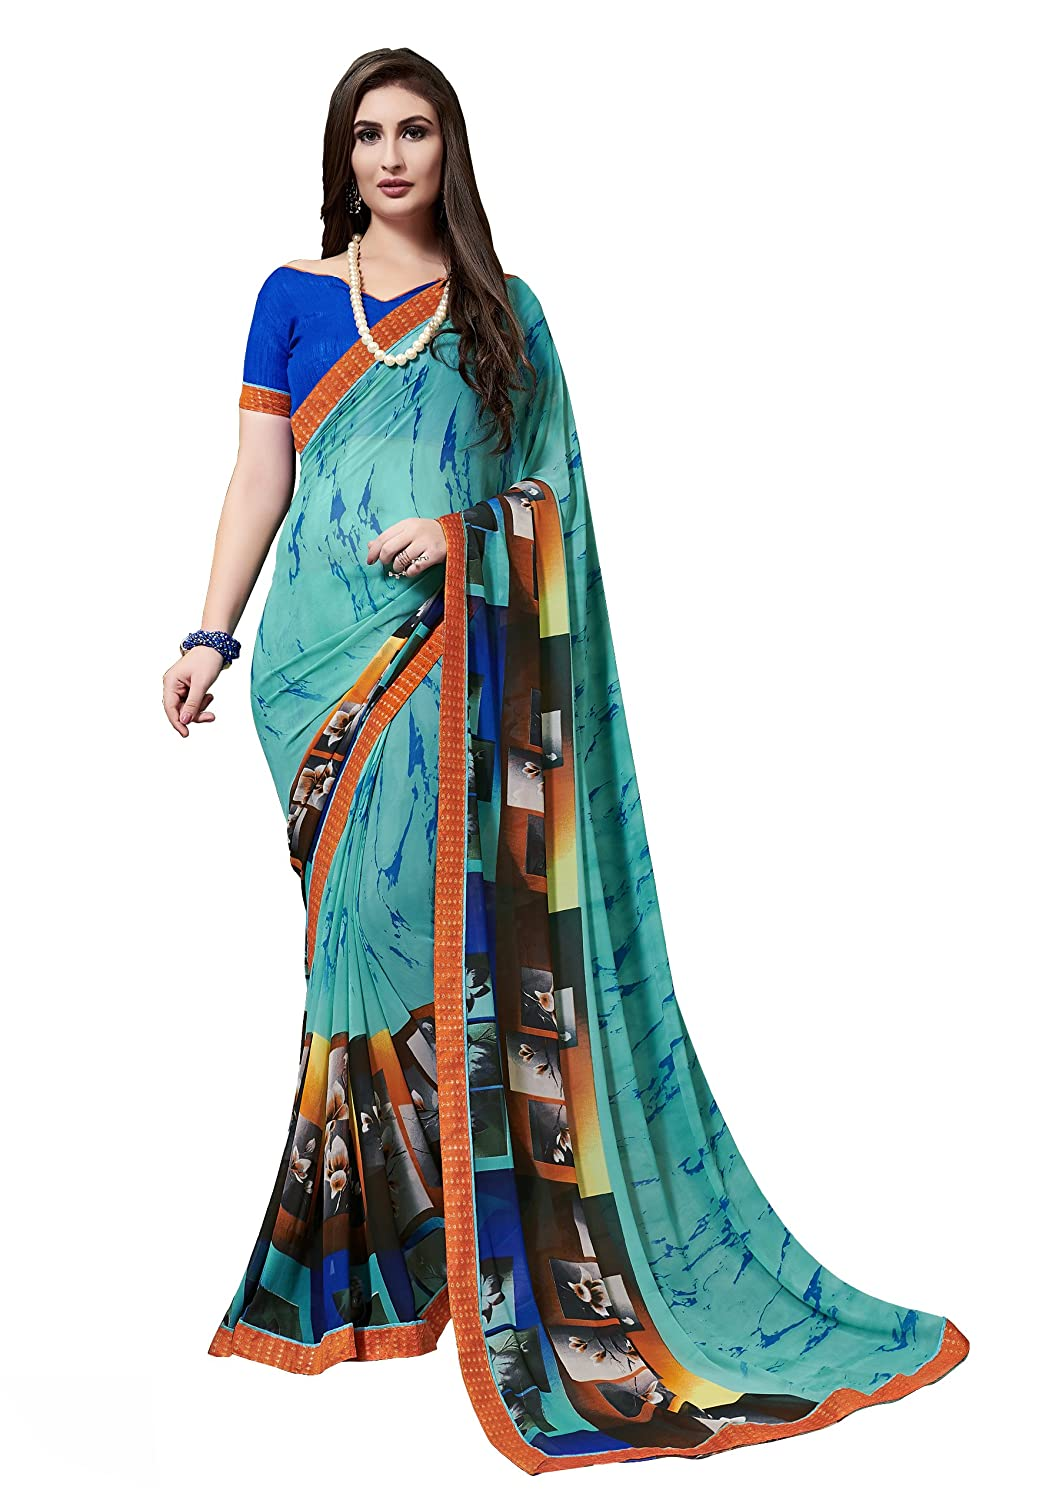 Gaurangi Creation Women's Georgette Printed Saree (DPN1007 Rama Blue)